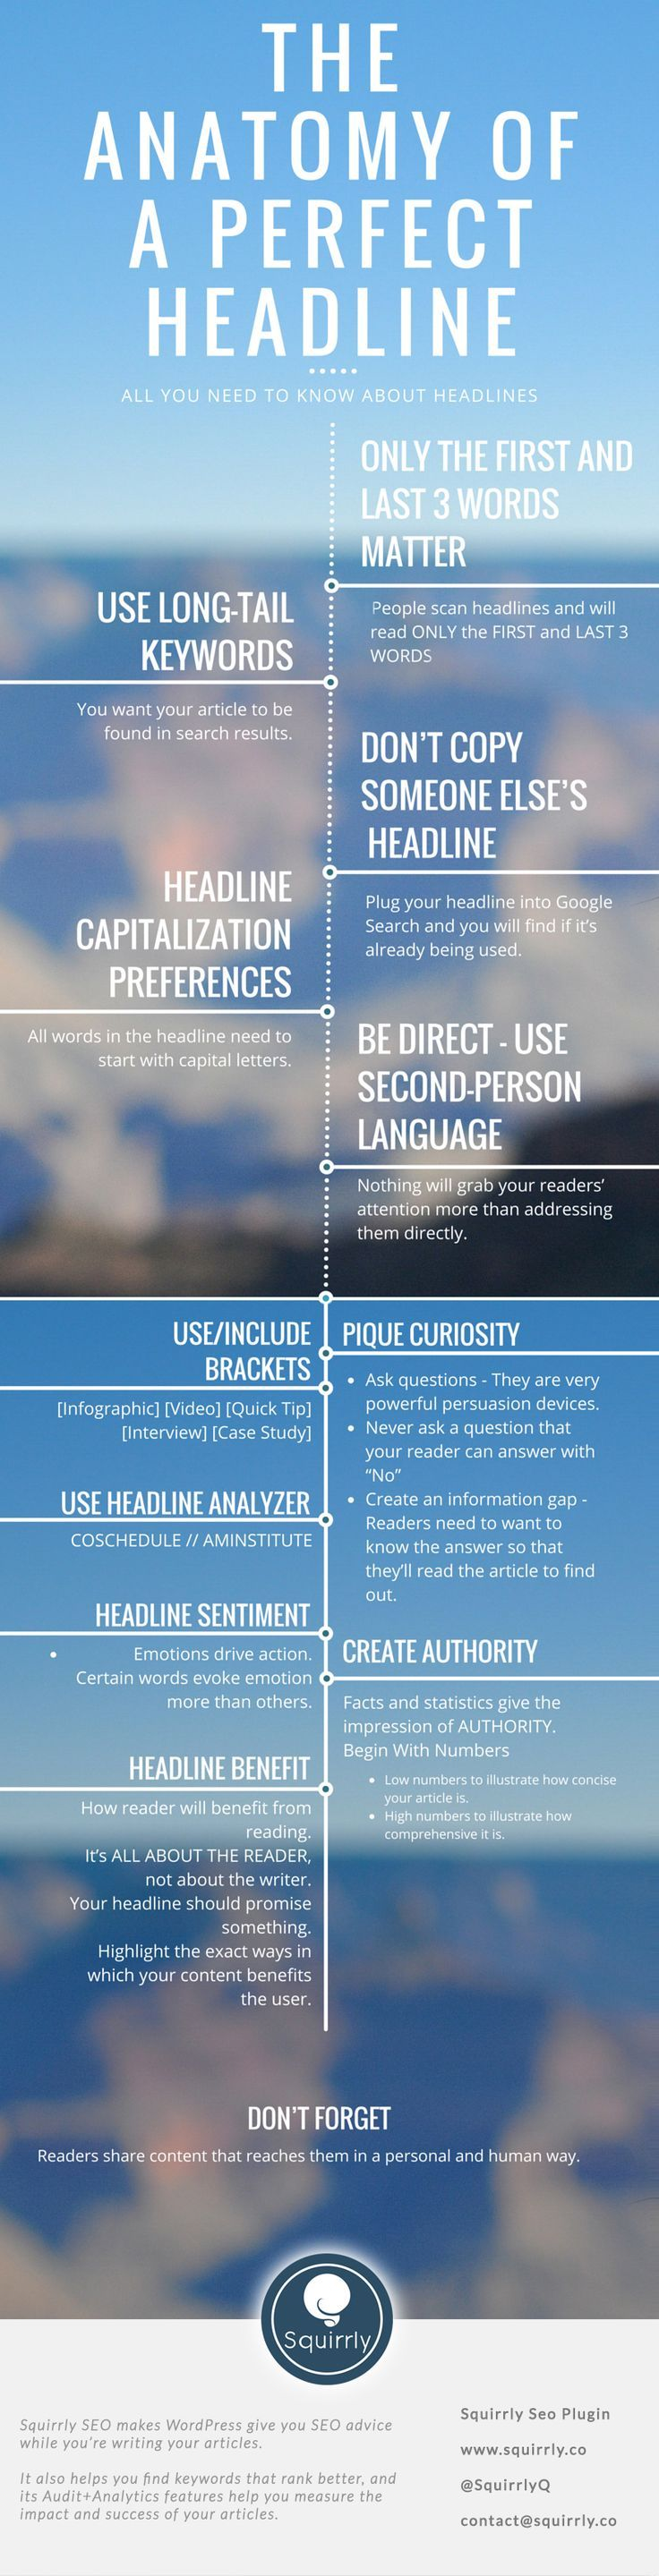 write perfect headlines for your blog articles; unique headlines for content creation; writing articles: